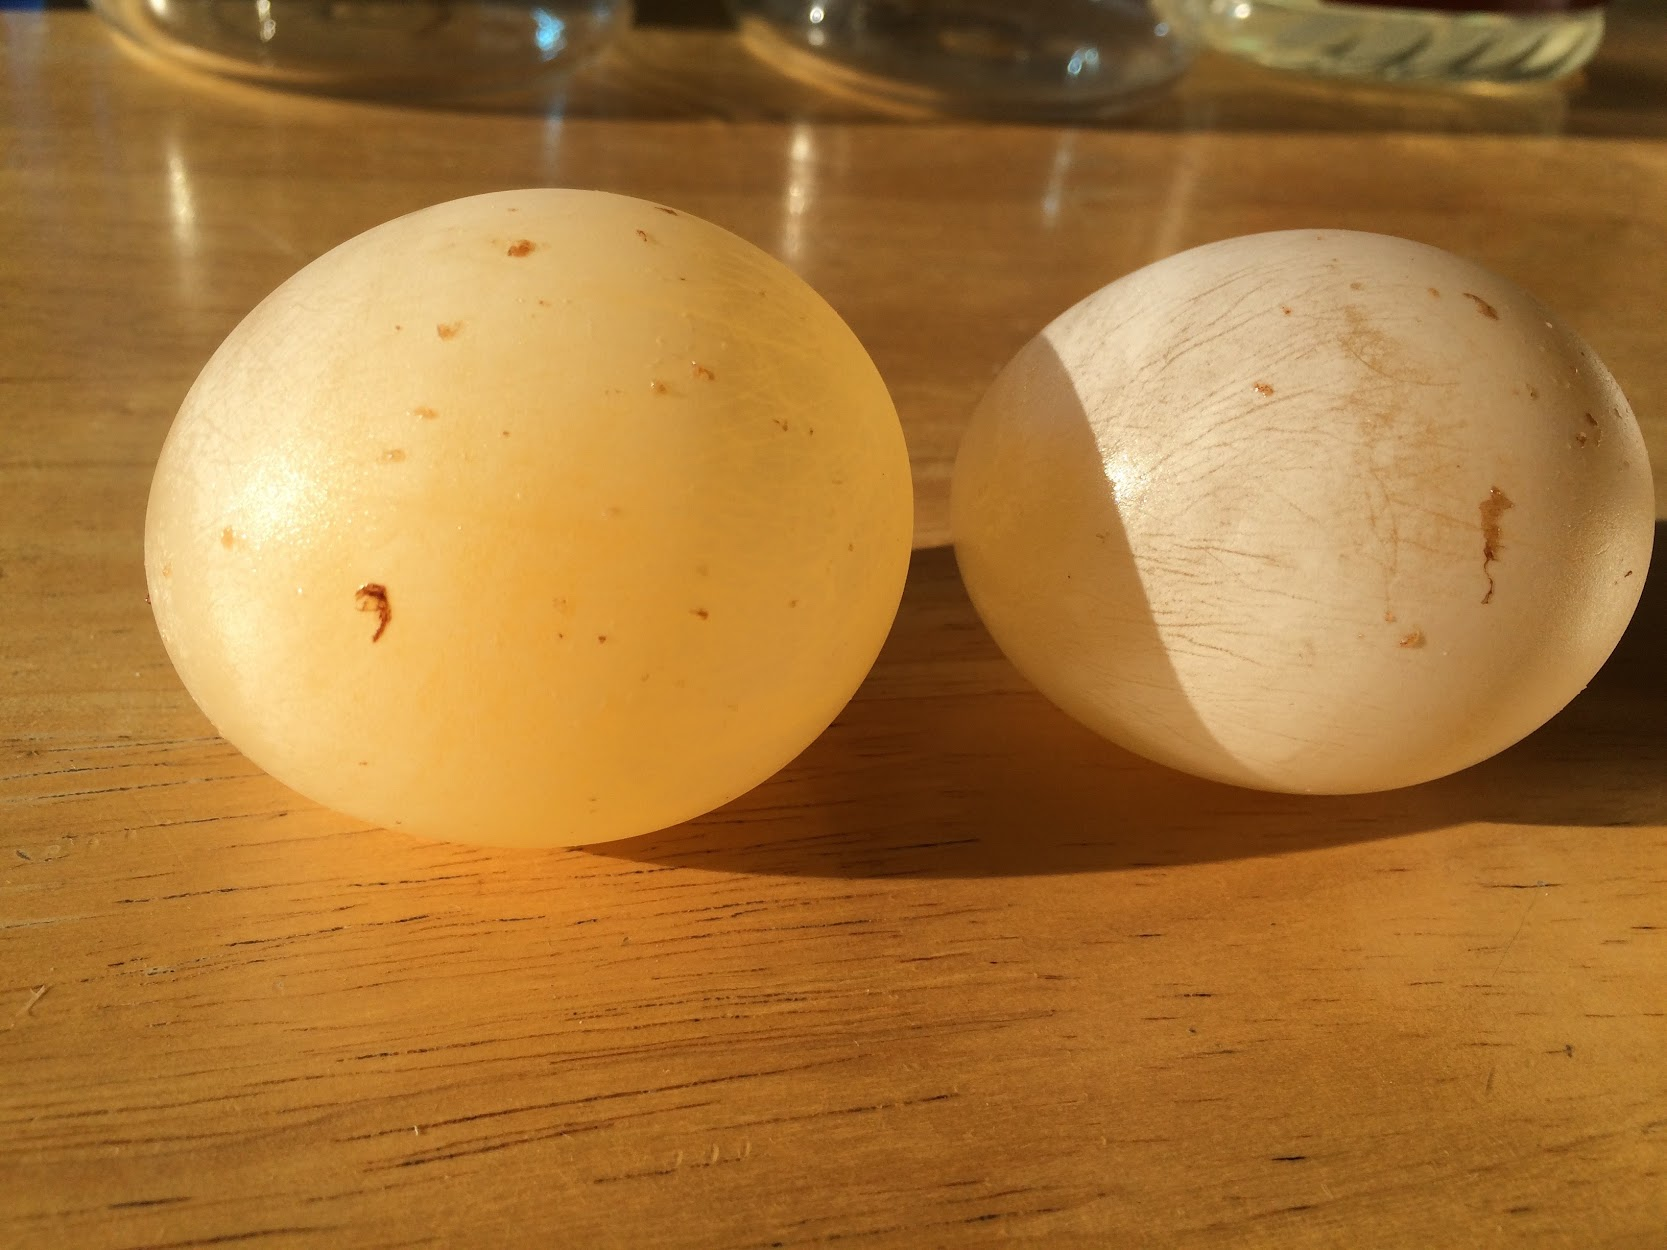 osmosis demonstration with a raw egg